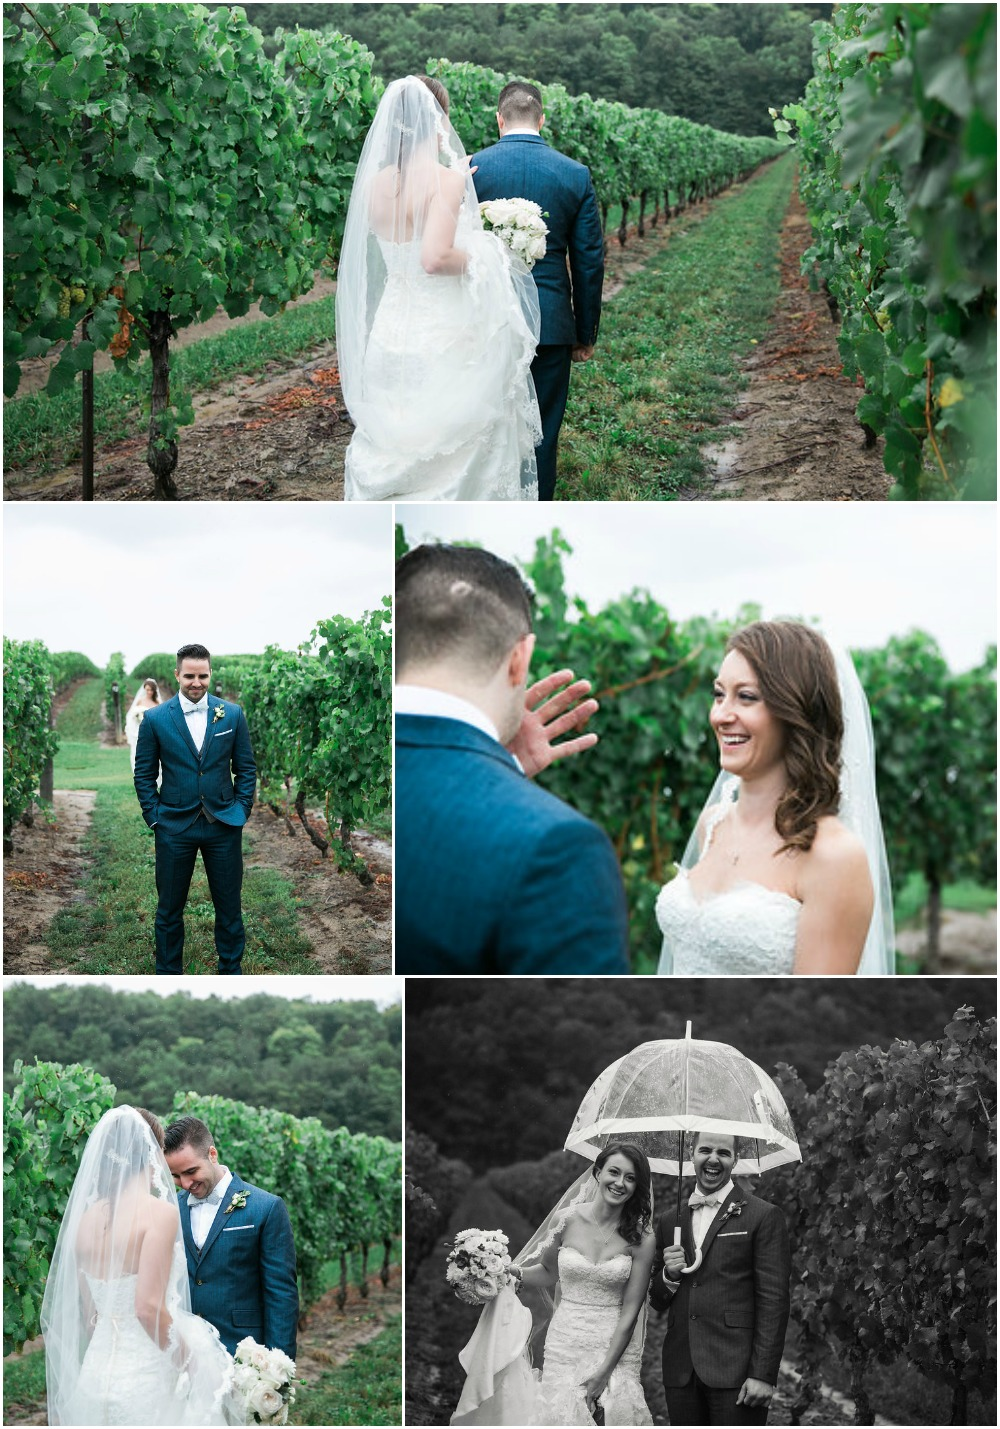 Niagara Wedding_Niagara Wedding Flowers_Cave Spring Wedding_Inn on the Twenty wedding_First Look Photography Ideas_Ooh La La Designs_Simply Lace Photography_image 3